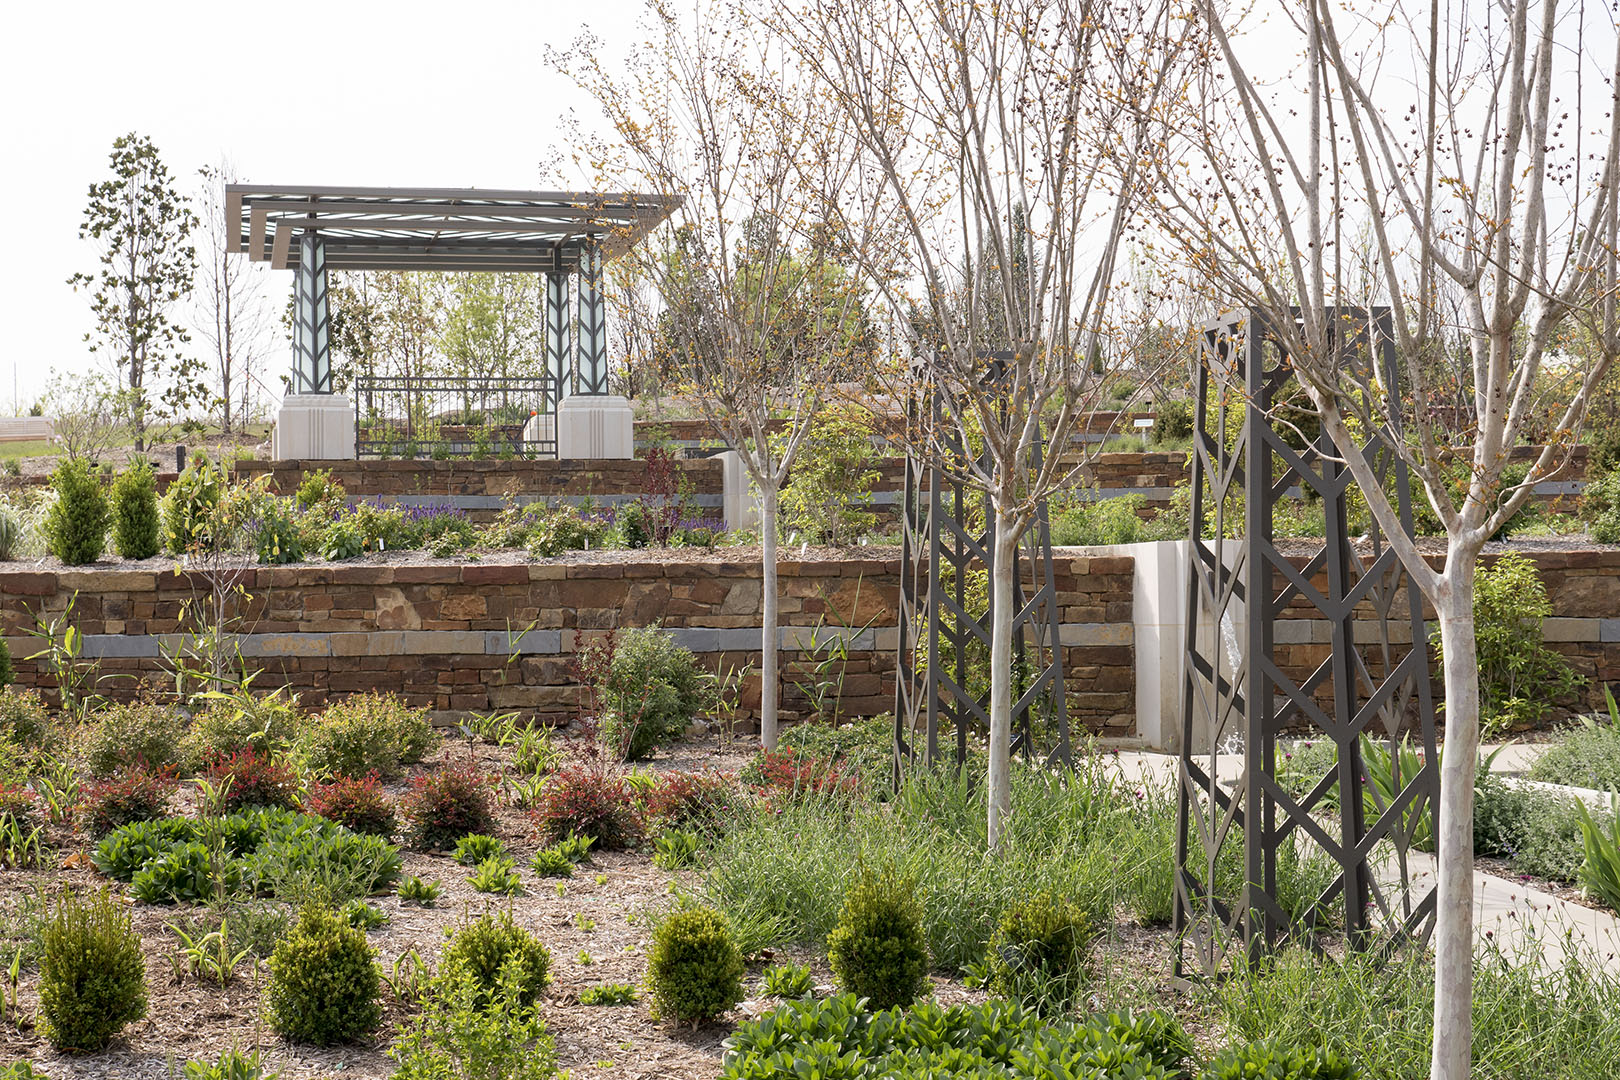 Preview Of Tulsa Botanic Garden S Children S Discovery